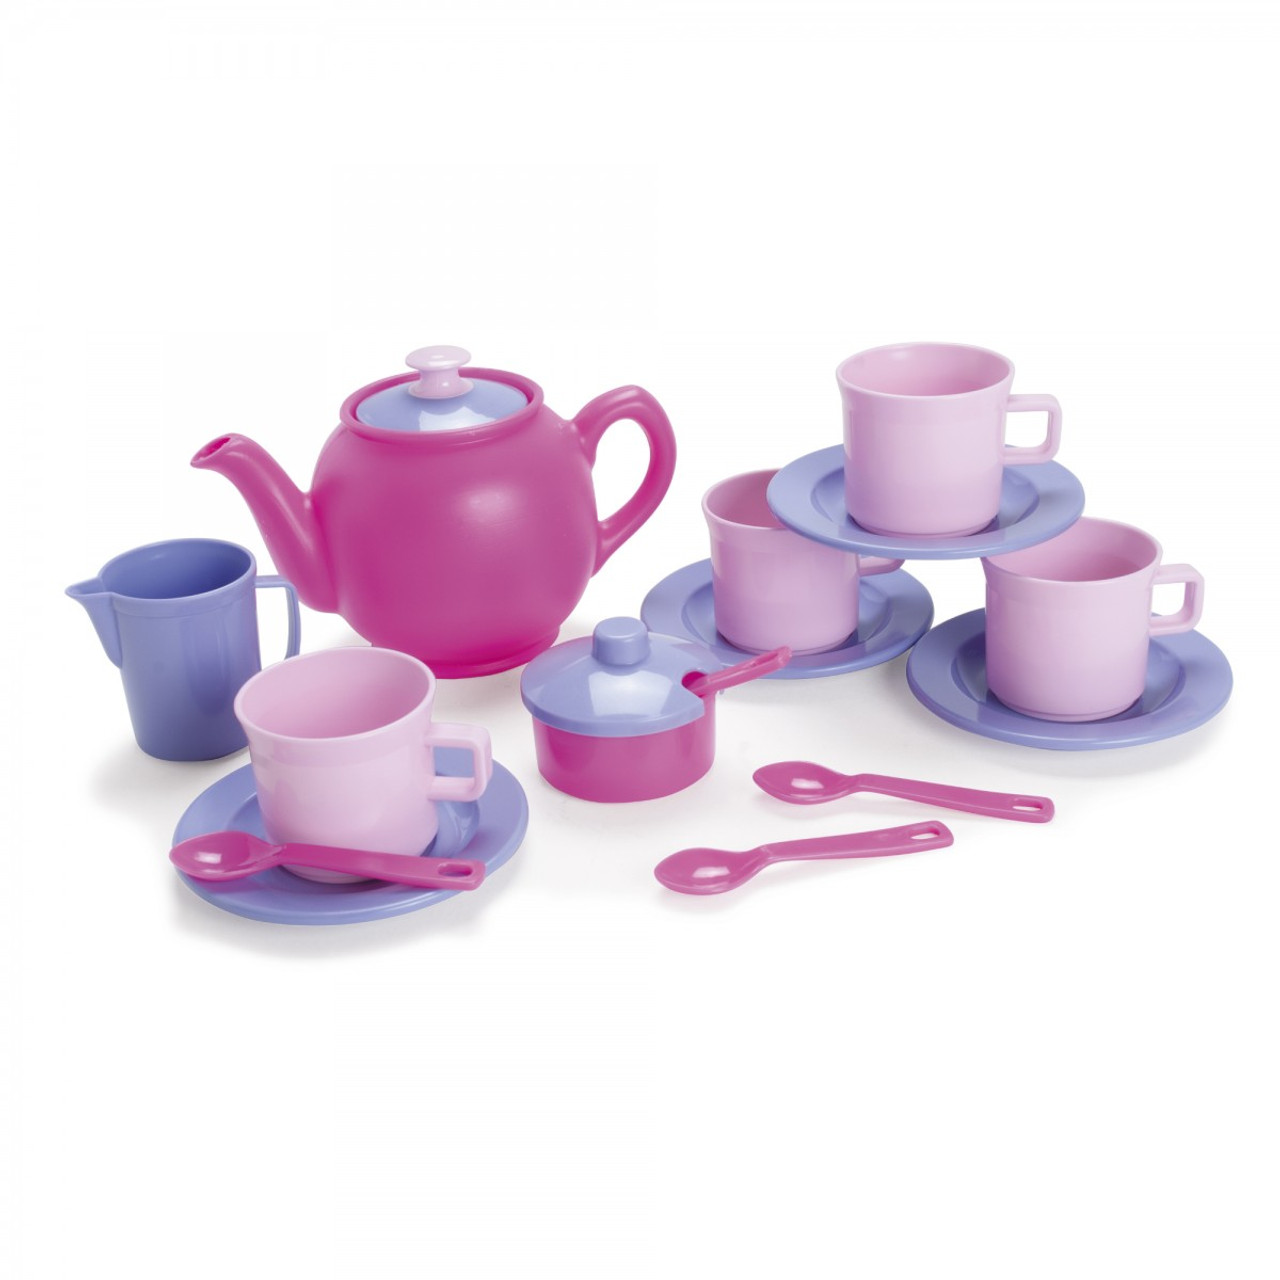 Princess Tea Set by Dantoy